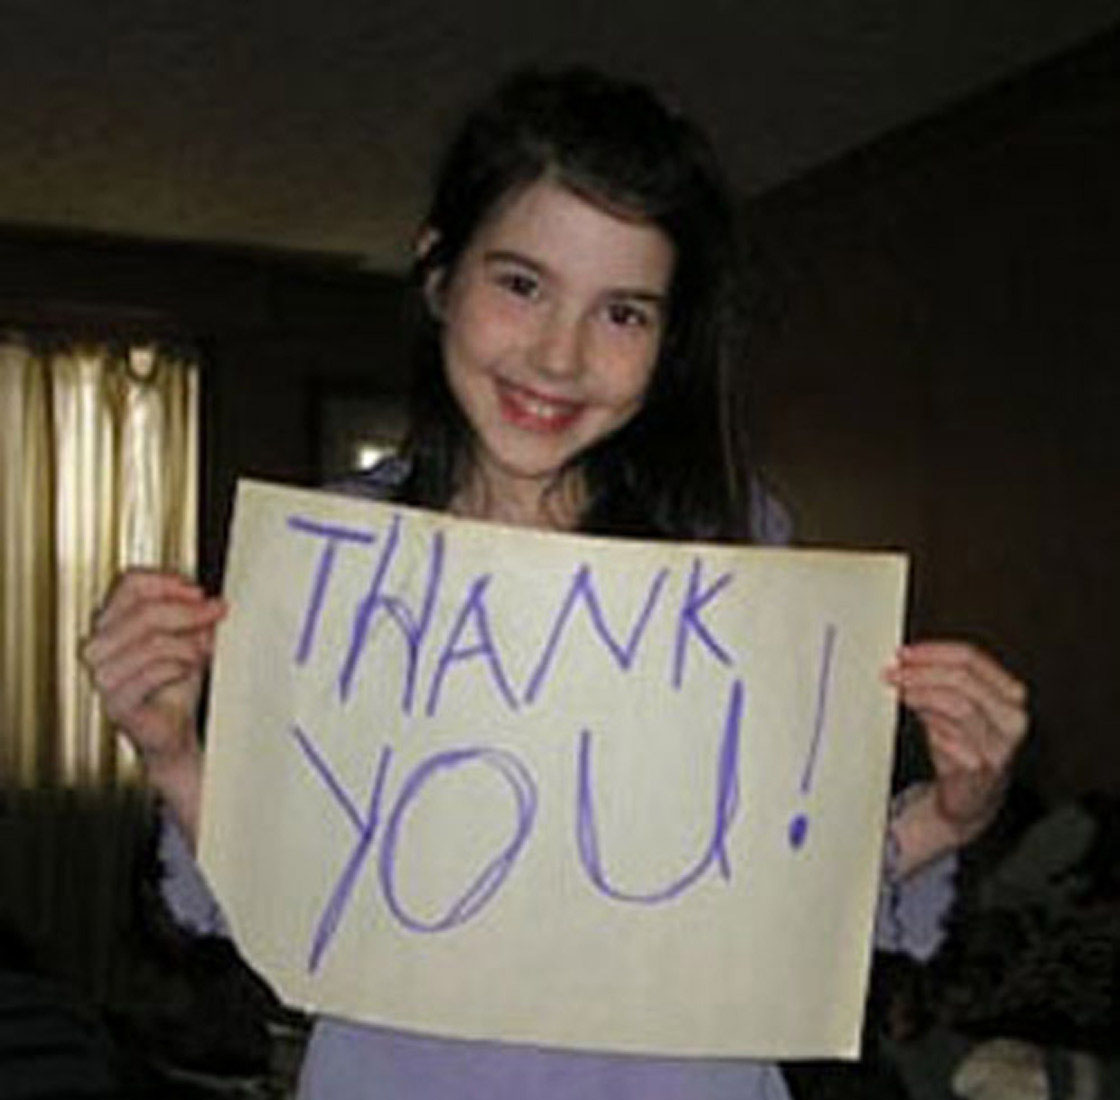 Fourteen-year-old Cassidy Megan, who has epilepsy, came up with the idea of an epilepsy awareness day in 2008.